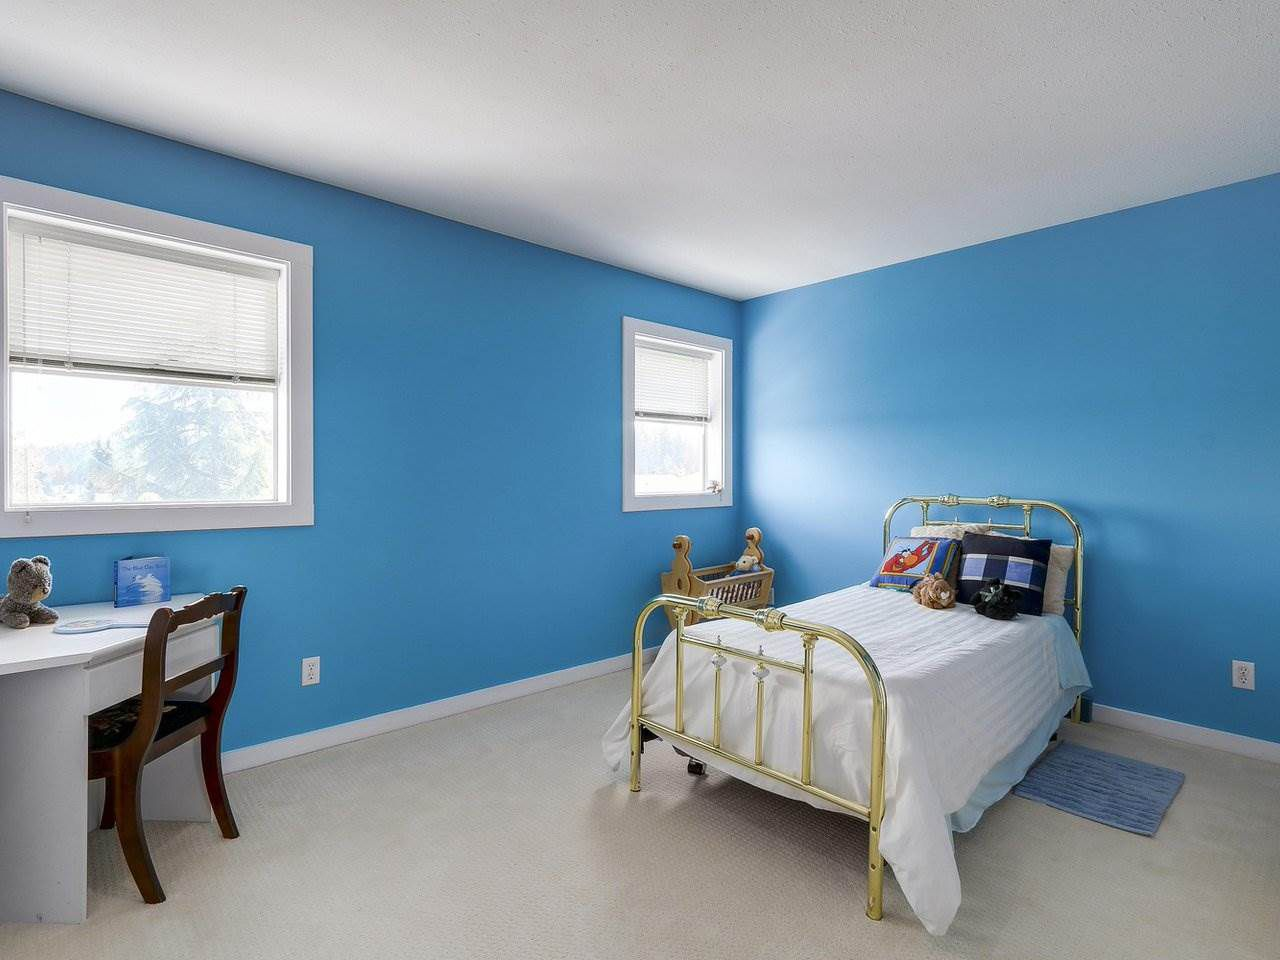 Photo 18: Photos: 737 East 29th Street, North Vancouver